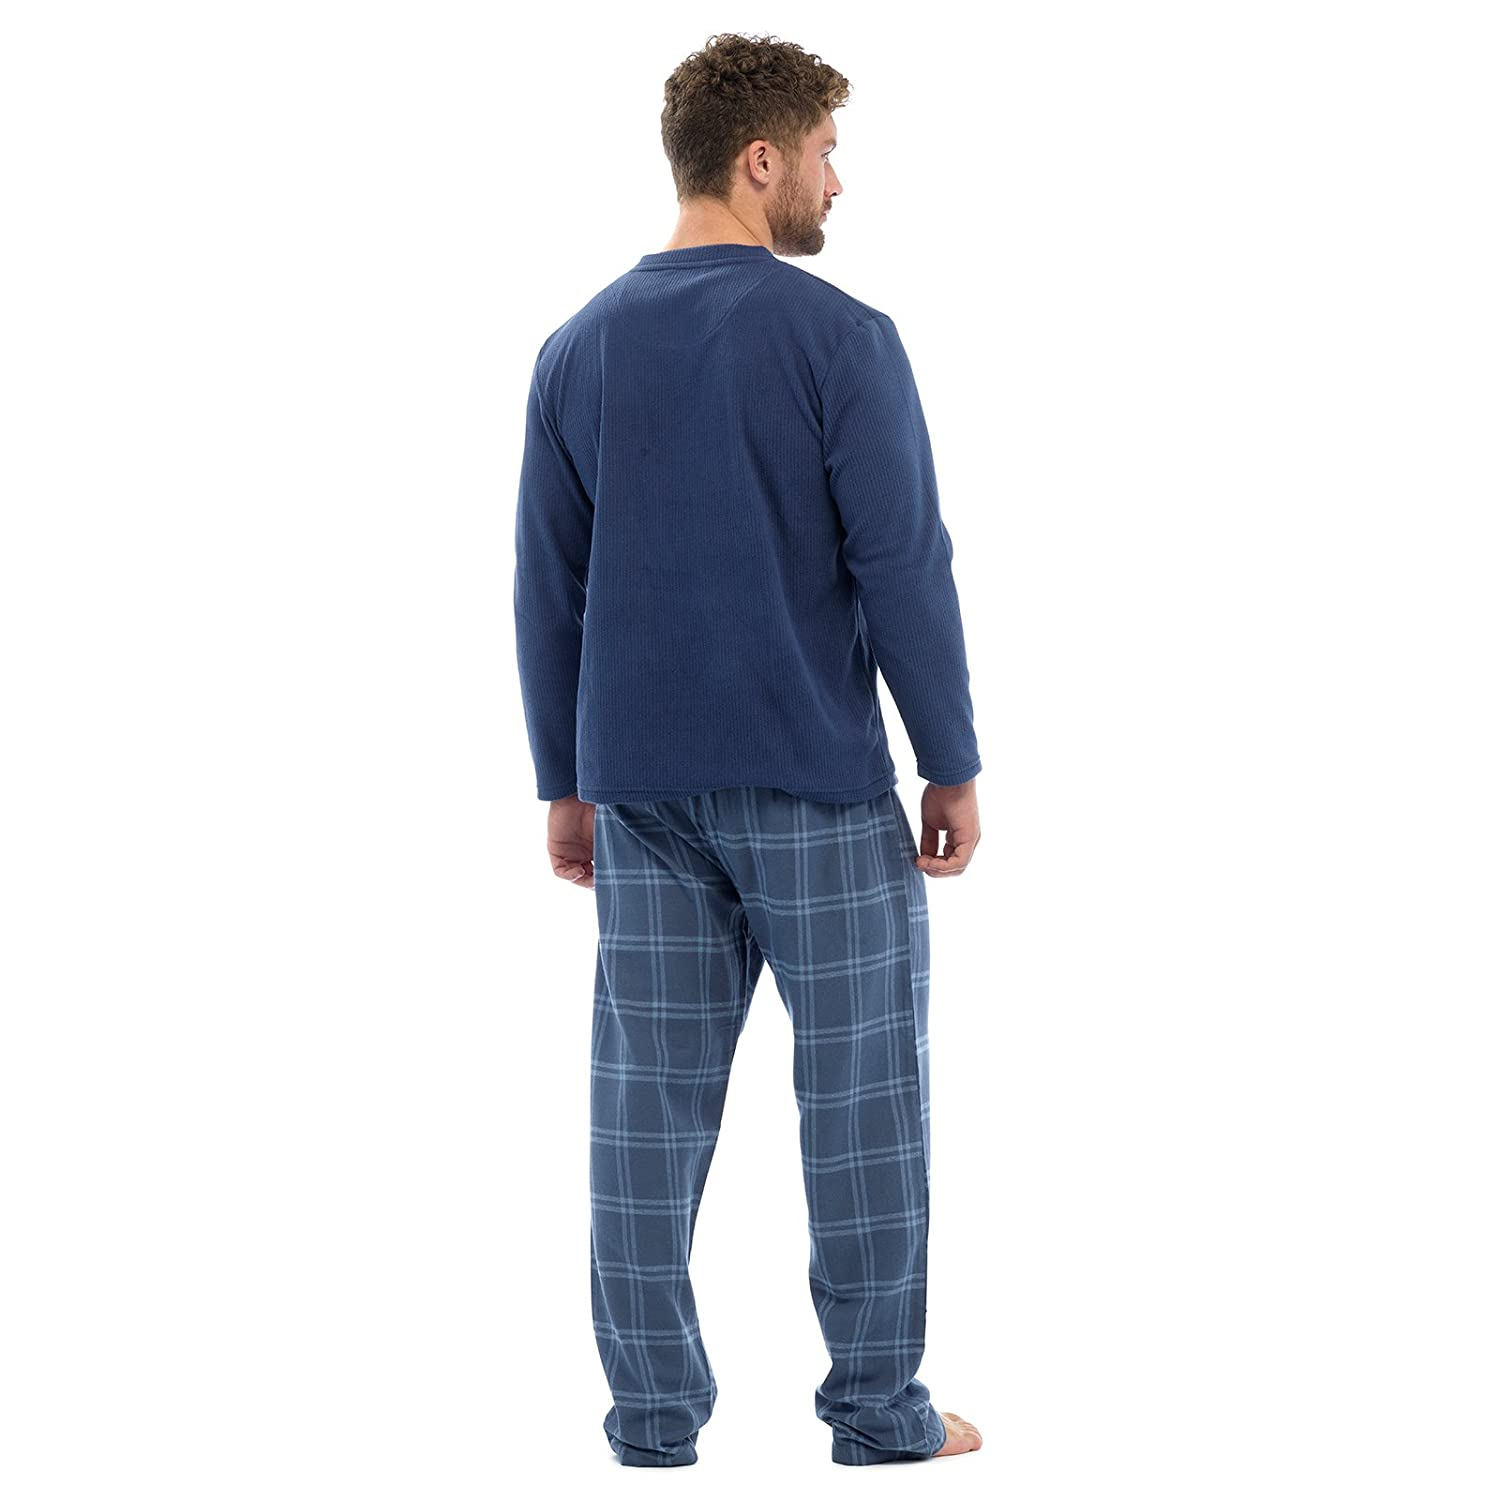 Mens Thermal Fleece Top & Flannel Check Bottoms PJ Pyjama Set Winter Nightwear Tom Franks